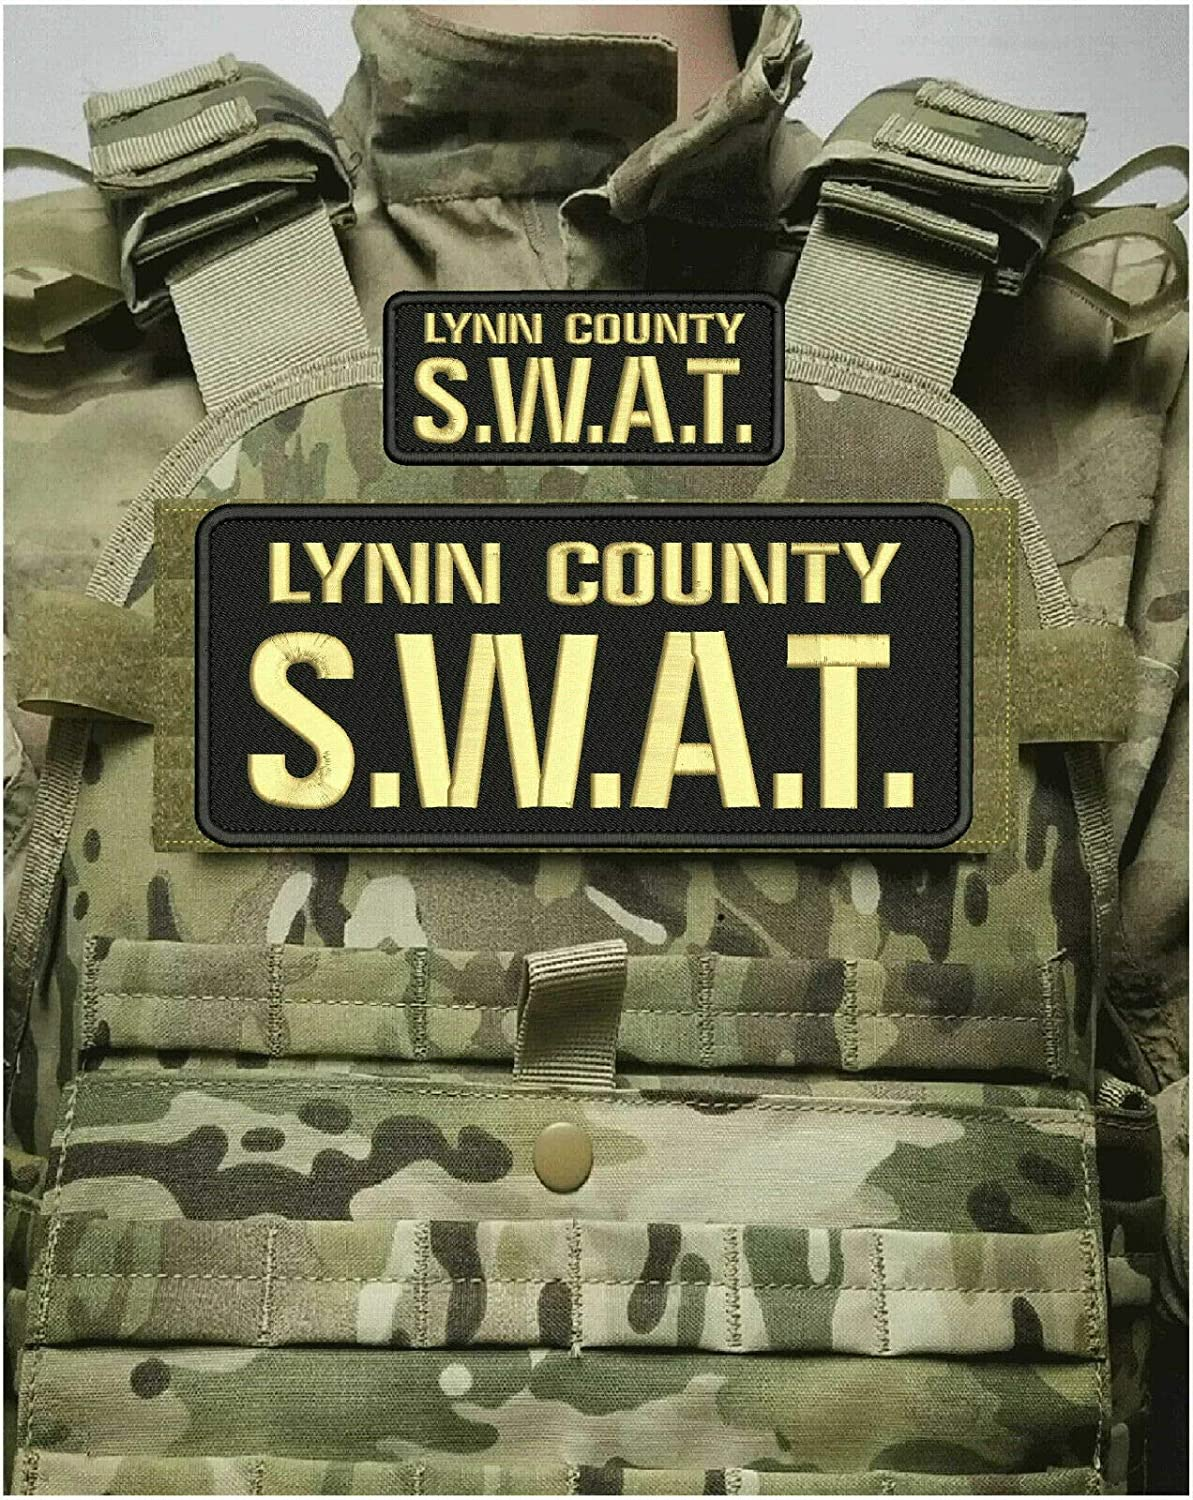 Lynn County S.W.A.T. Embroidery Patches 4X10 and 2X5 Hook On Bac